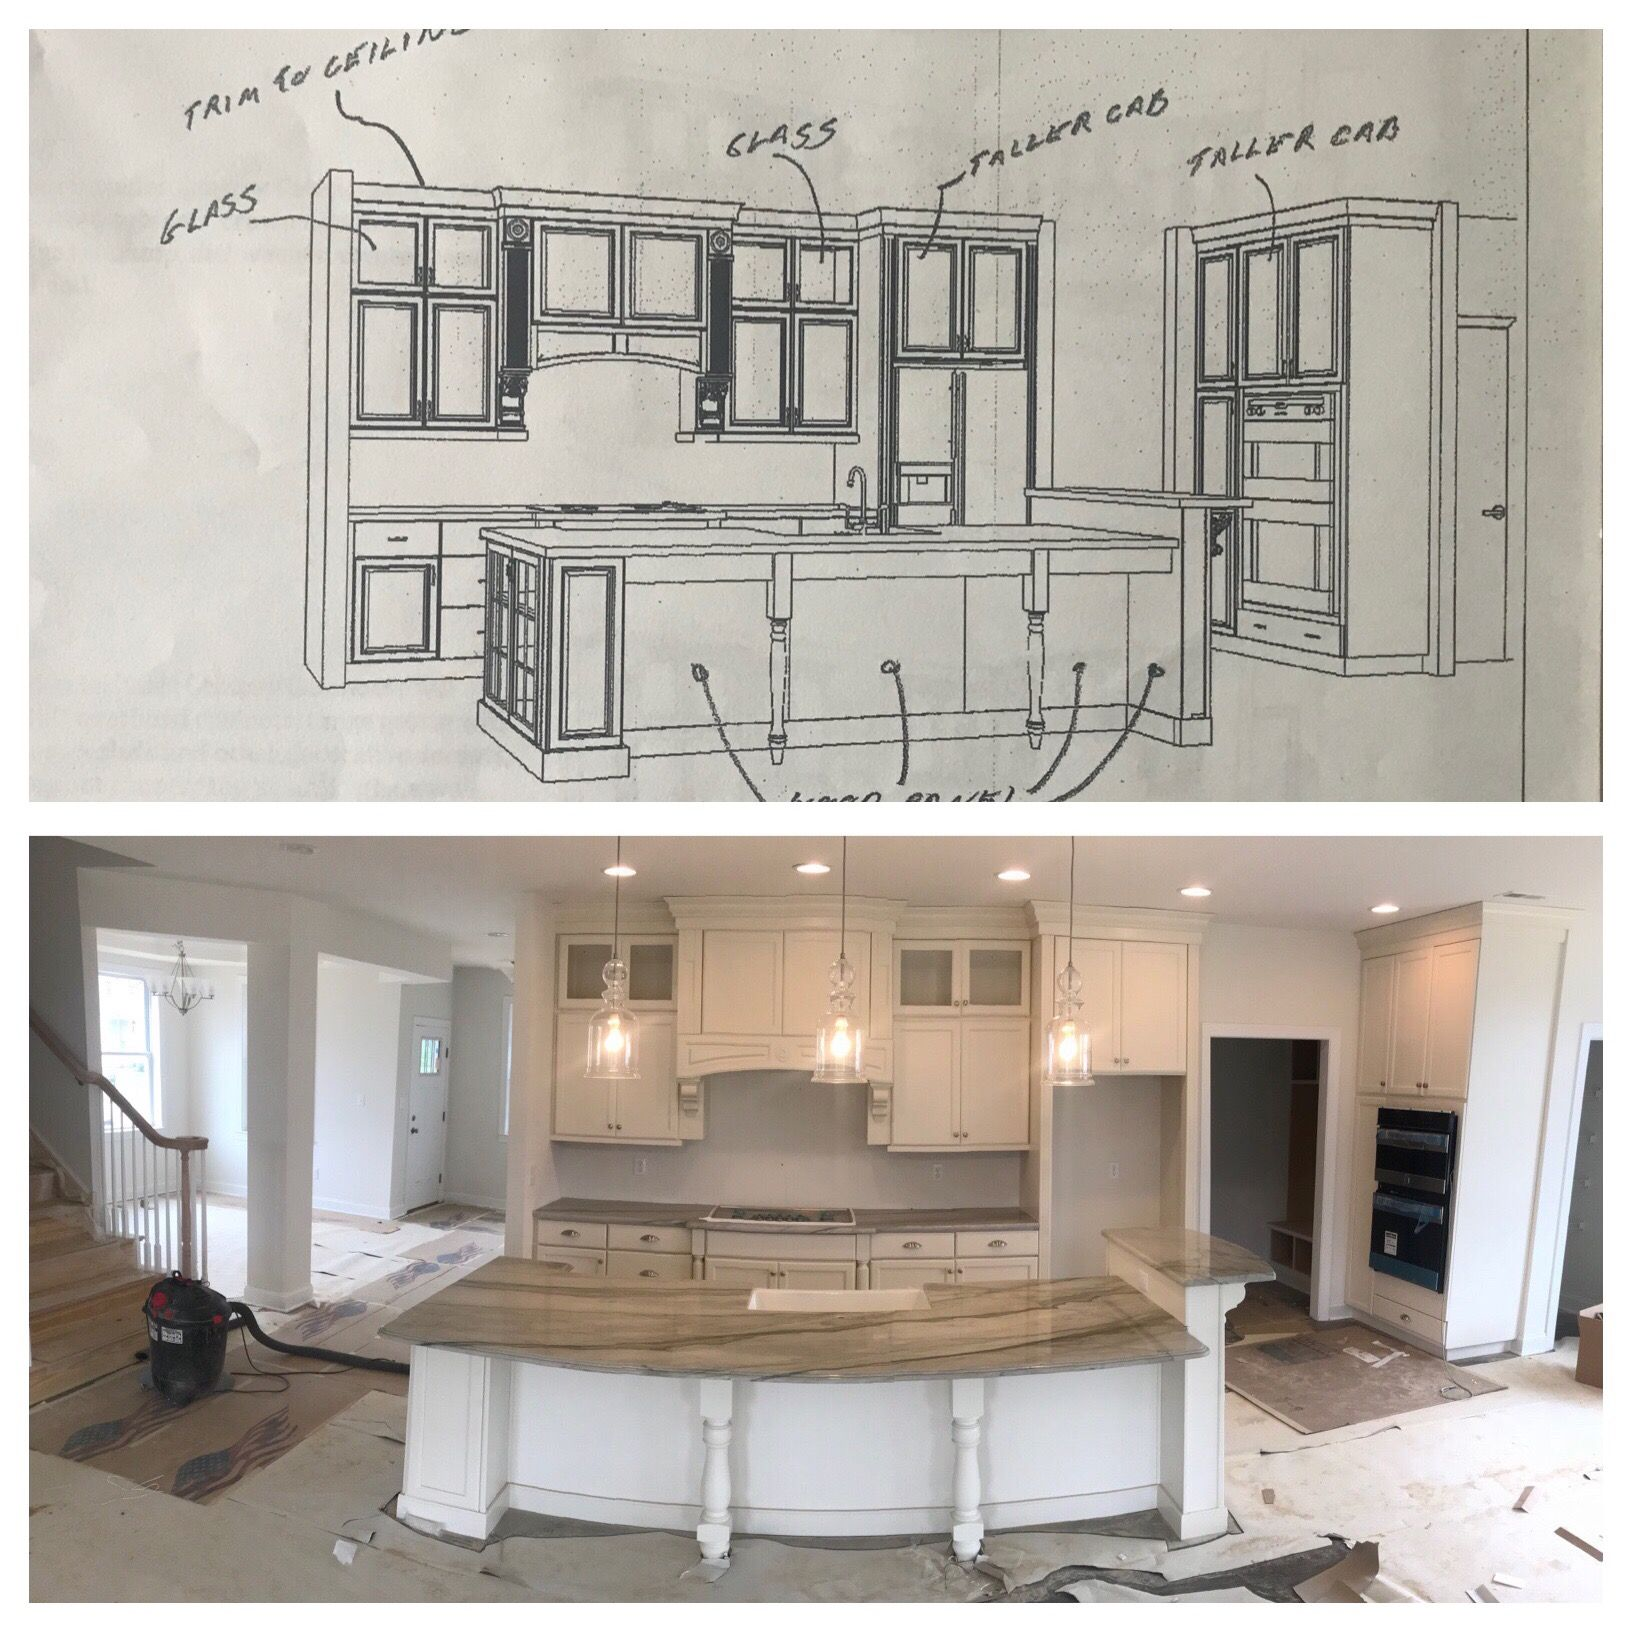 White Kitchen Cabinets Large Island: From Design To Almost Done! Eggshell White Kitchen